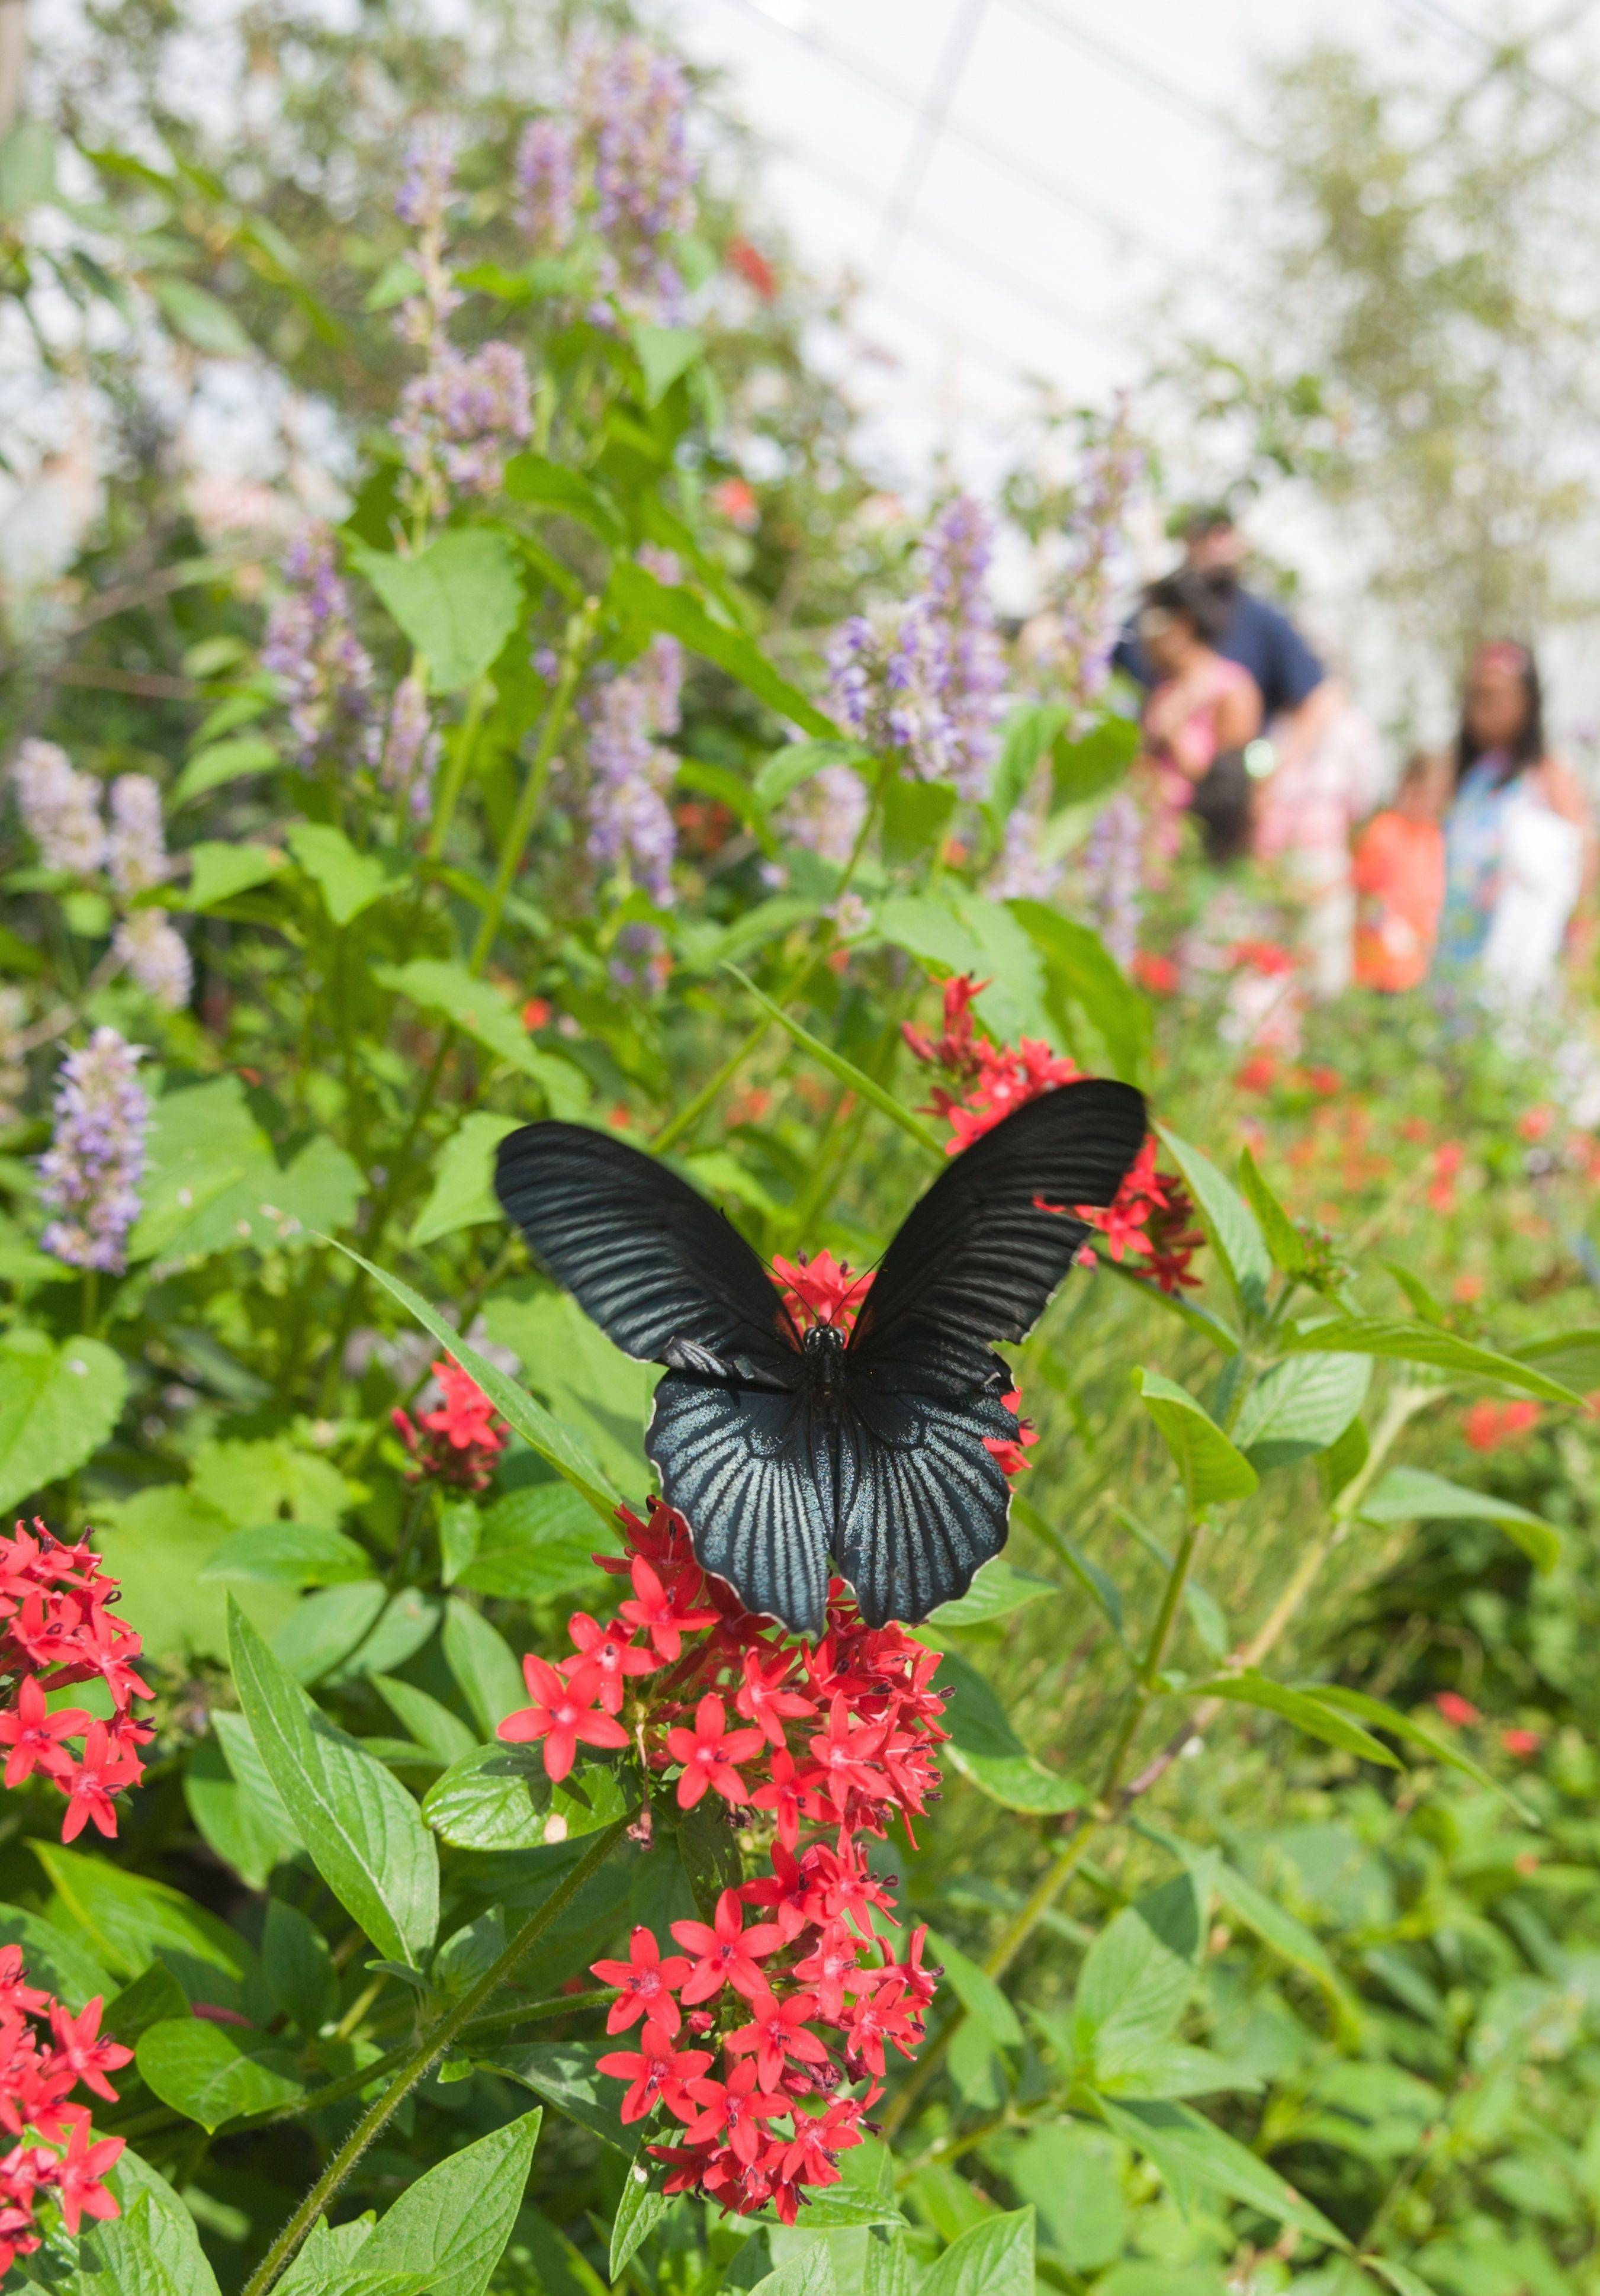 Butterflies & Blooms exhibit back for its second year